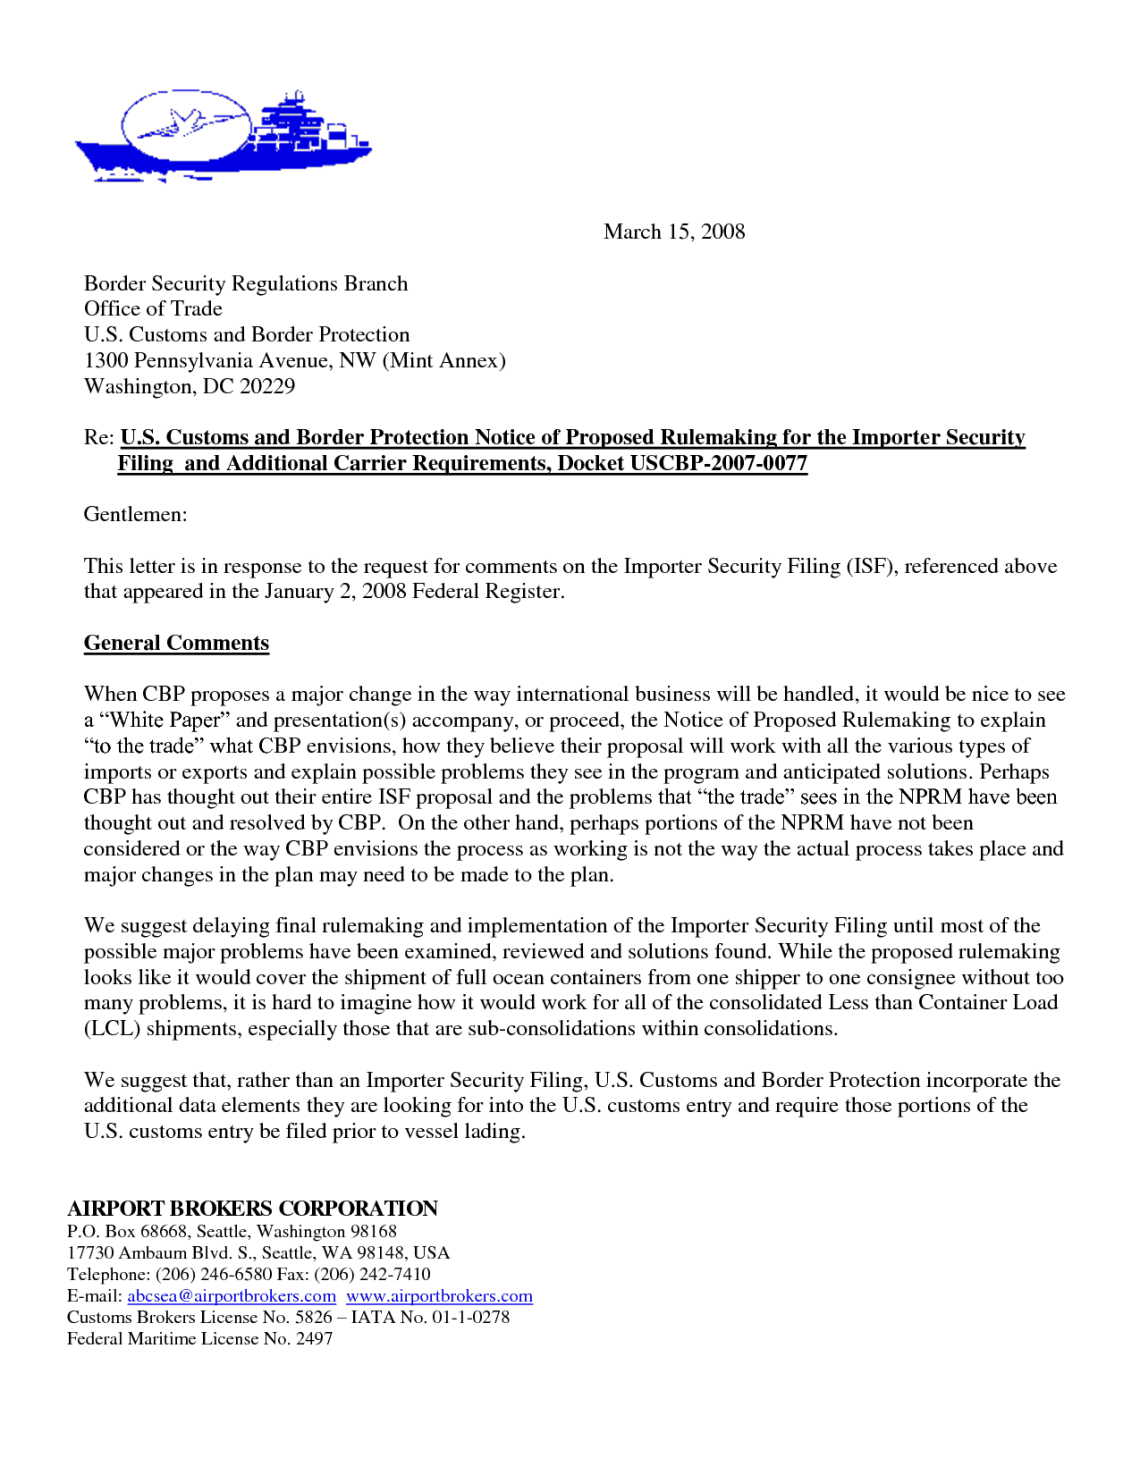 business proposal letter 4